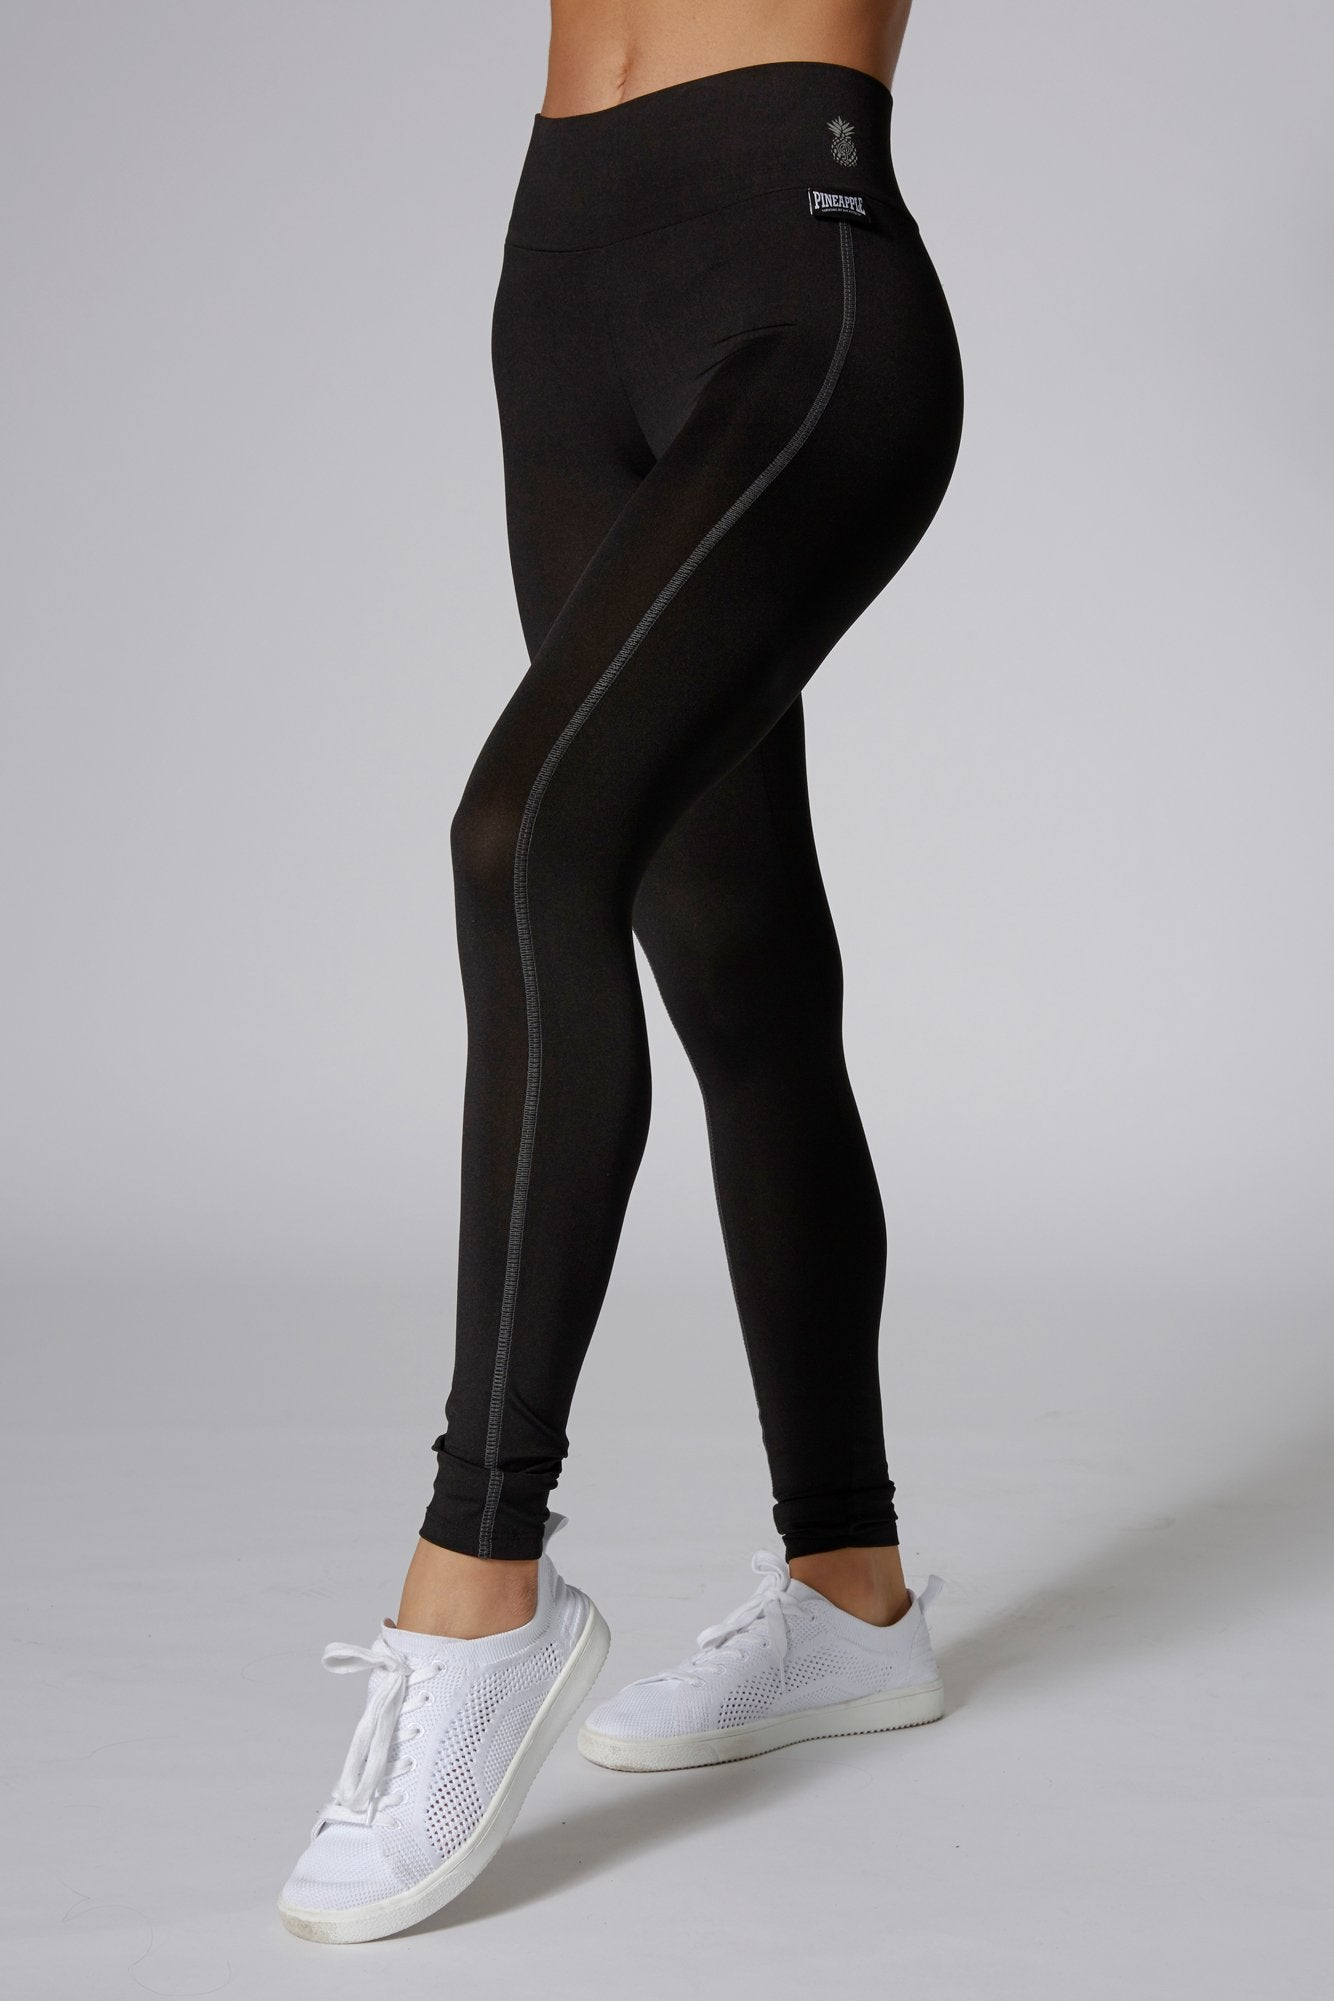 Pineapple Dancewear Women's Black Performance Leggings